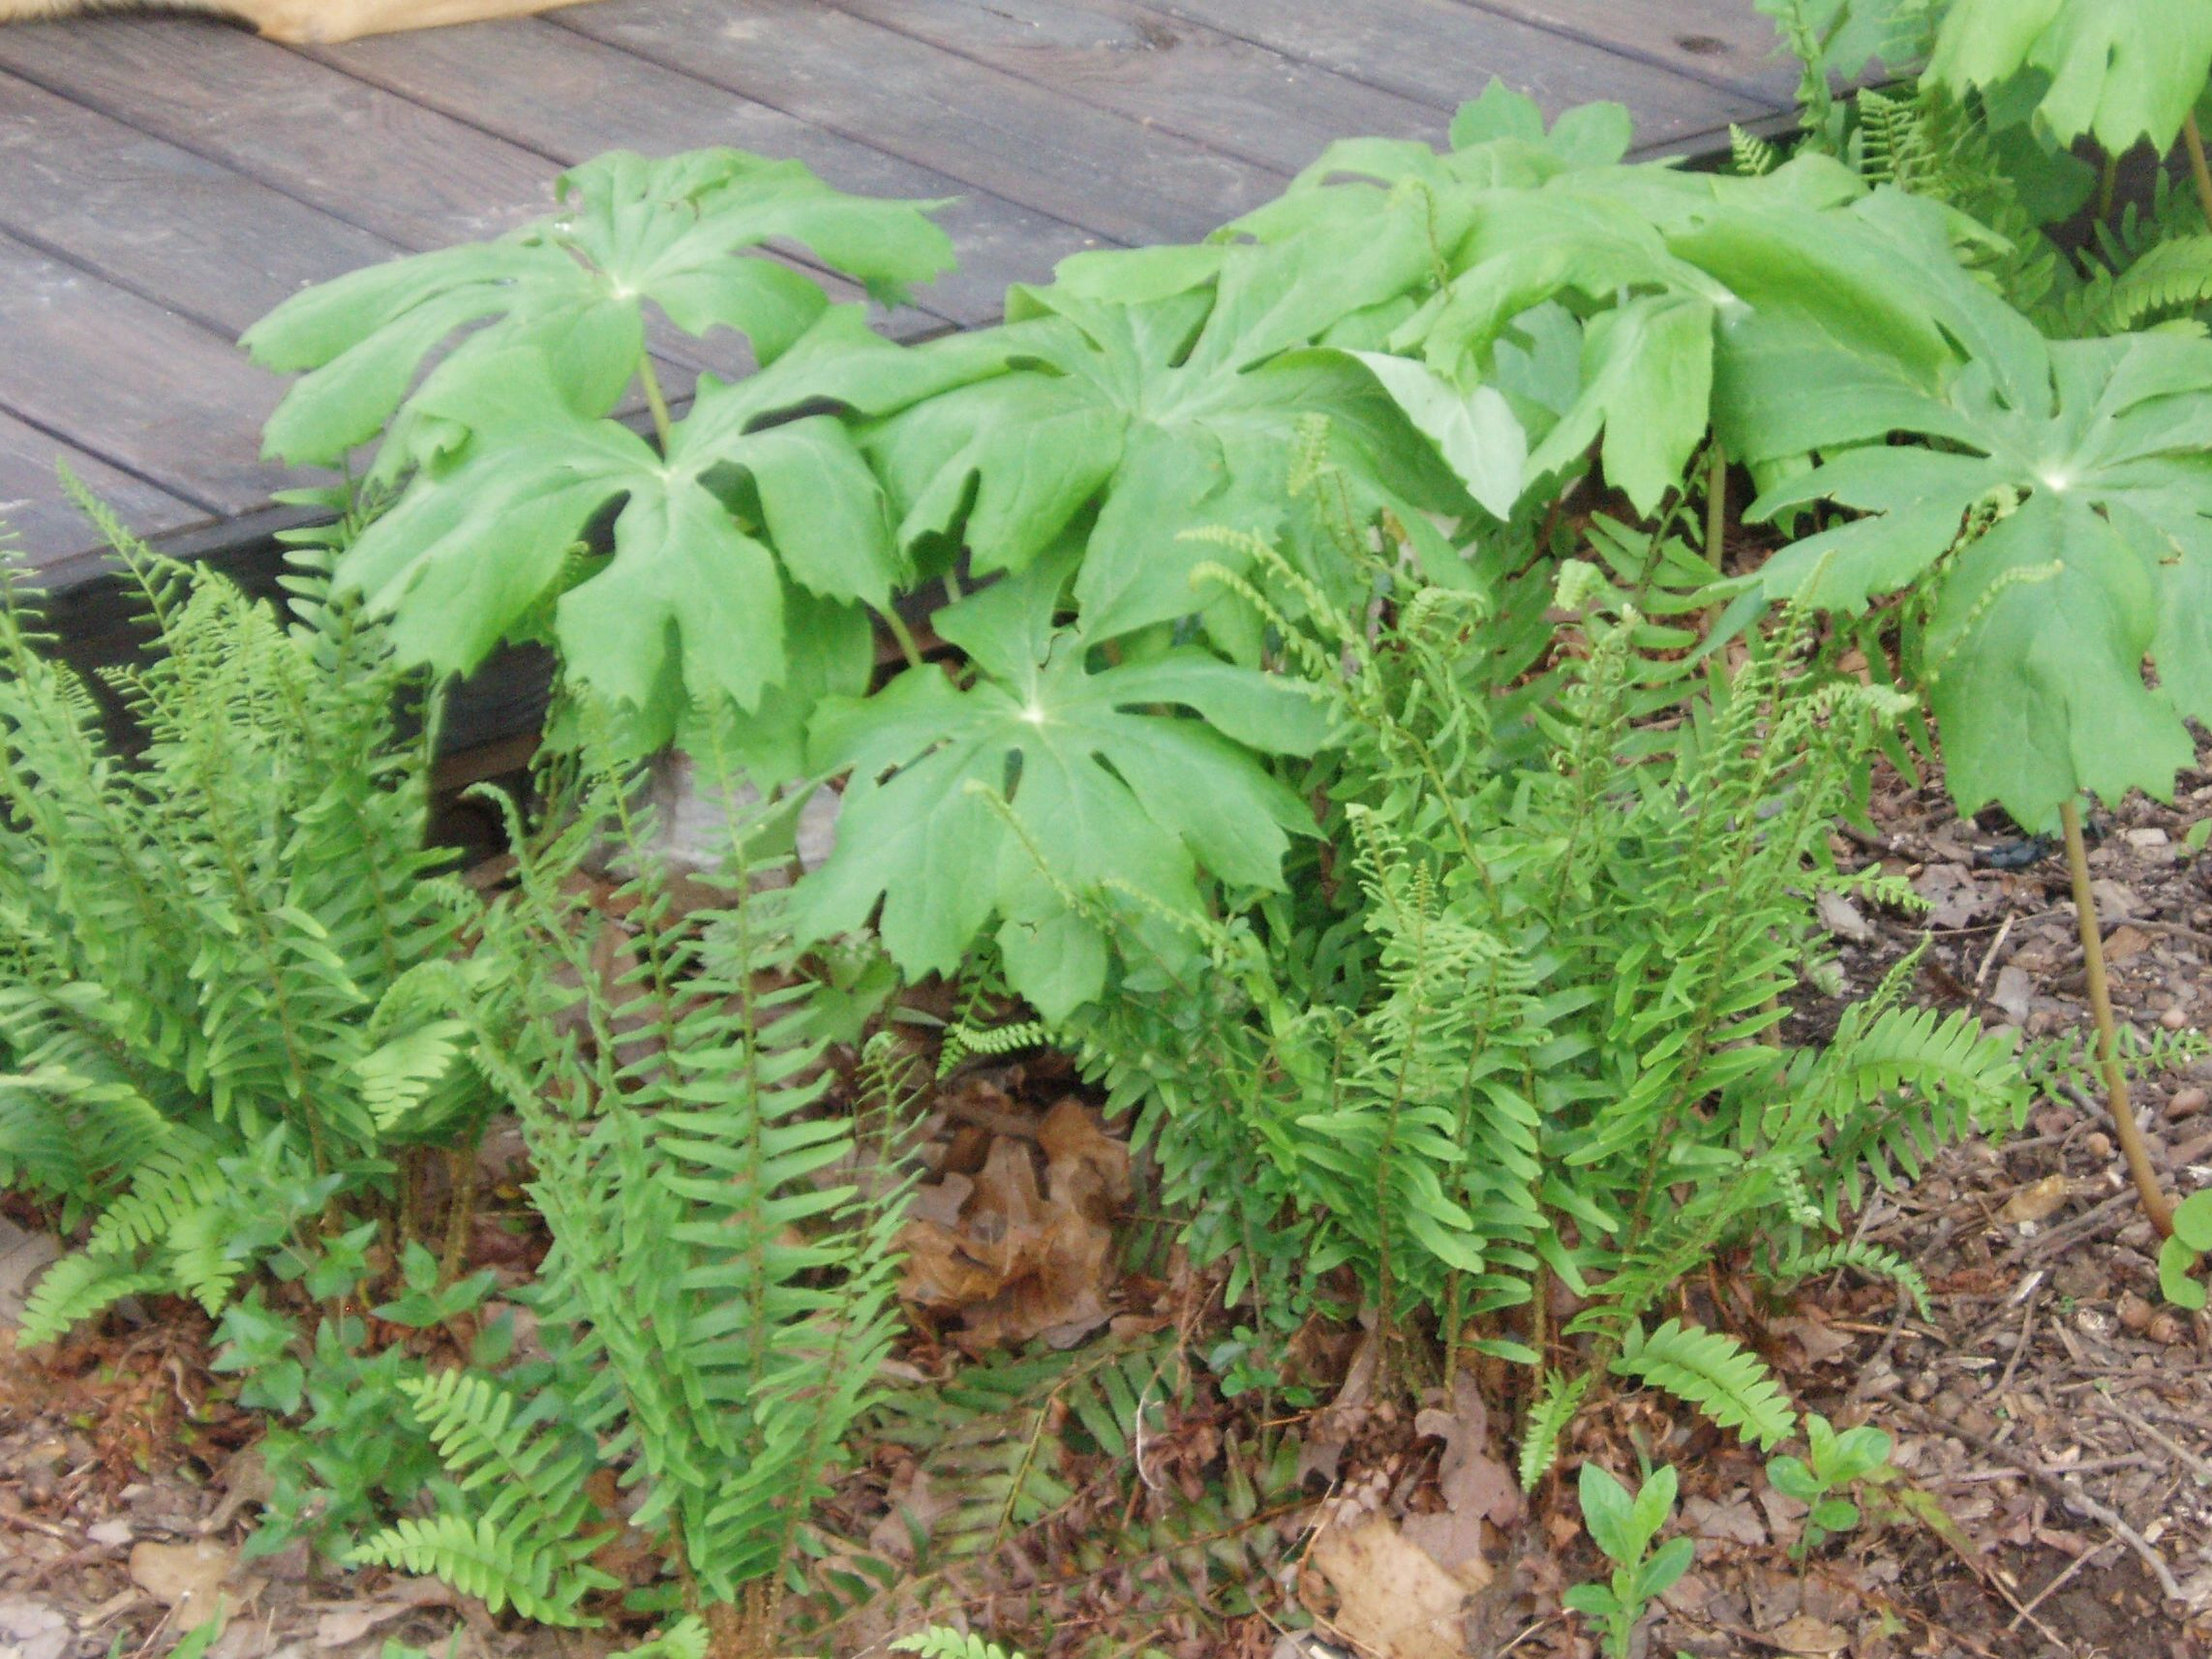 "{""blocks"":[{""key"":""11vqc"",""text"":""Polystichum acrostichoides Christmas fern -  potted plants email john@easywildflowers.com  "",""type"":""unstyled"",""depth"":0,""inlineStyleRanges"":[],""entityRanges"":[],""data"":{}}],""entityMap"":{}}"